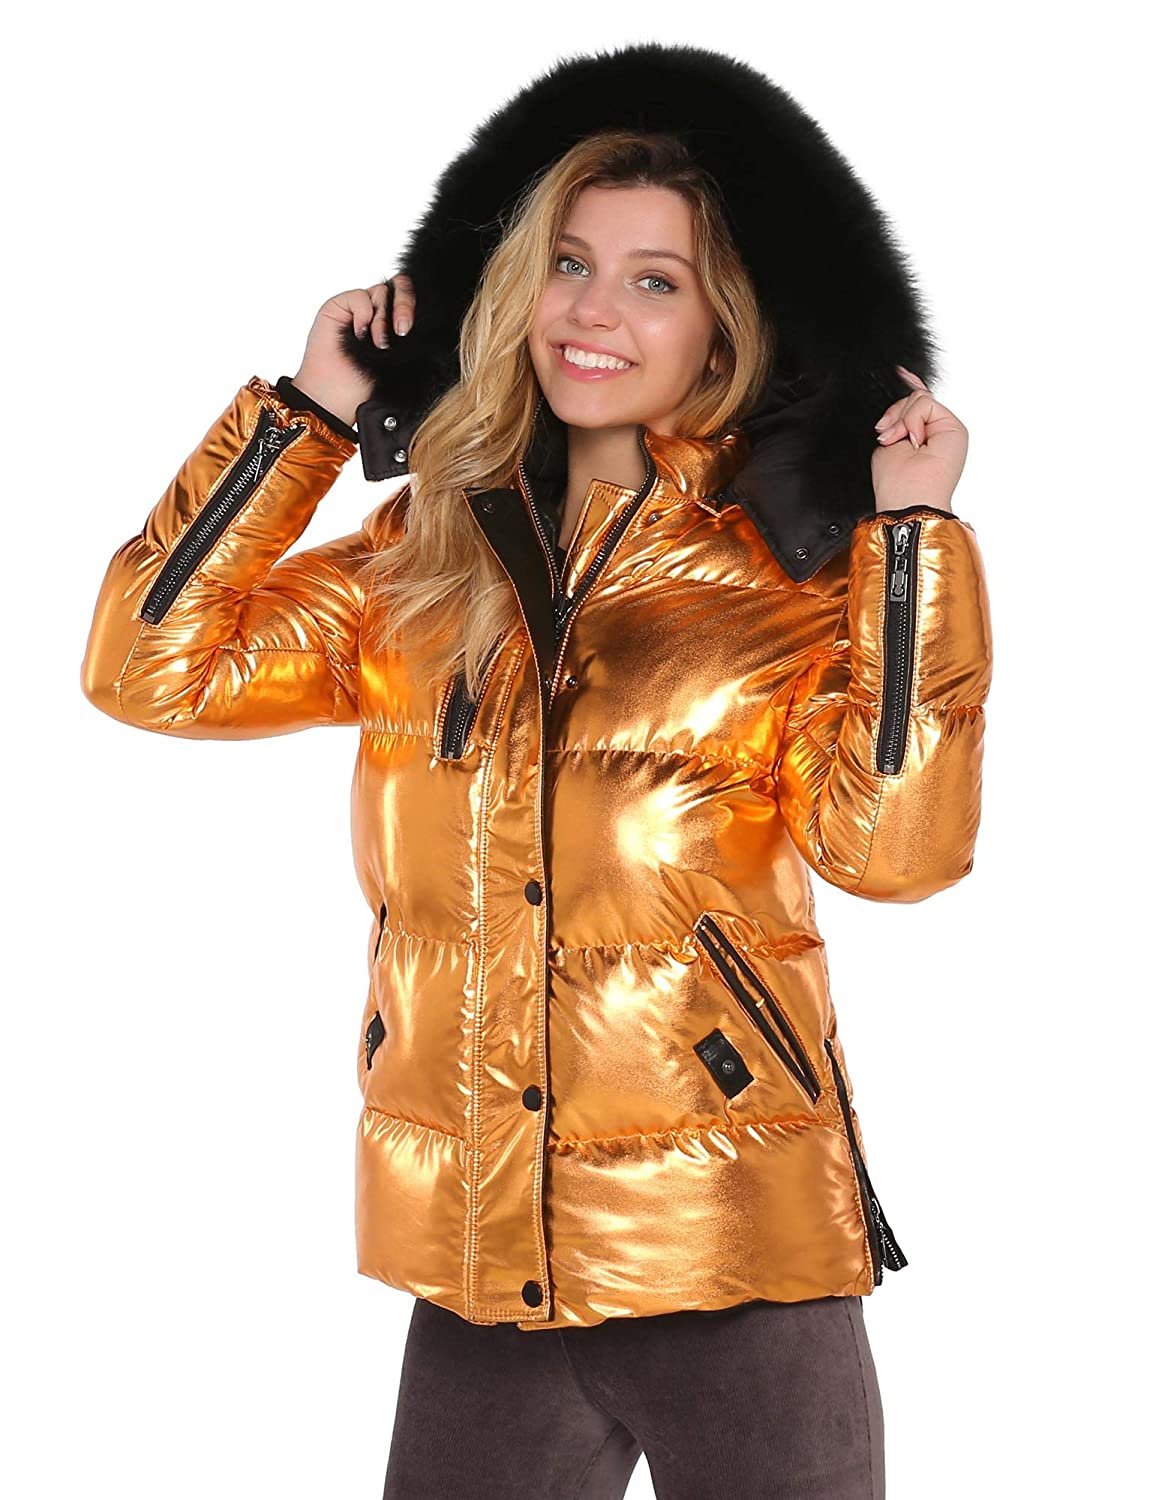 SELITE COLLECTION Metalic orange Puffer Woman Jacket with Real Fur